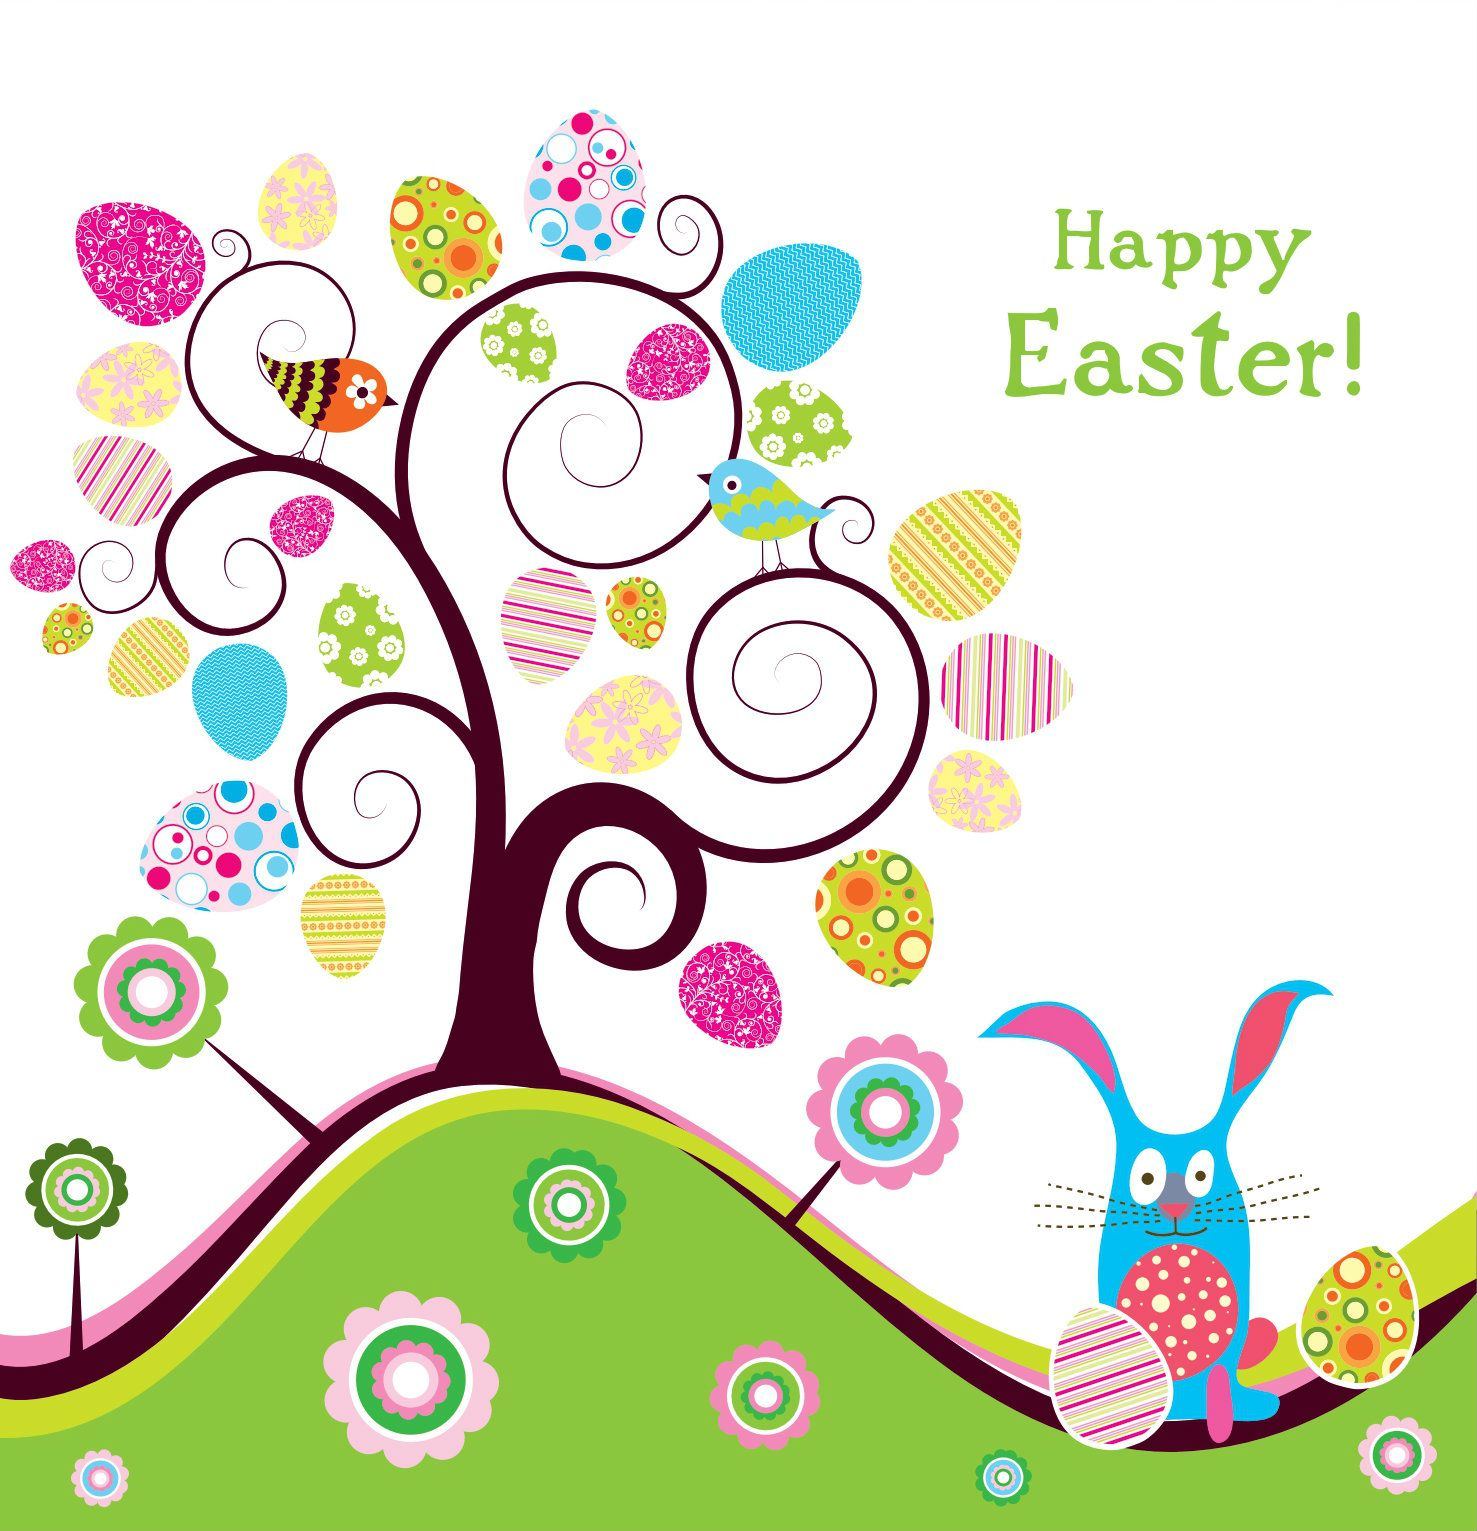 Easter Card Printable 2 Easter Pinterest Easter Card And Easter